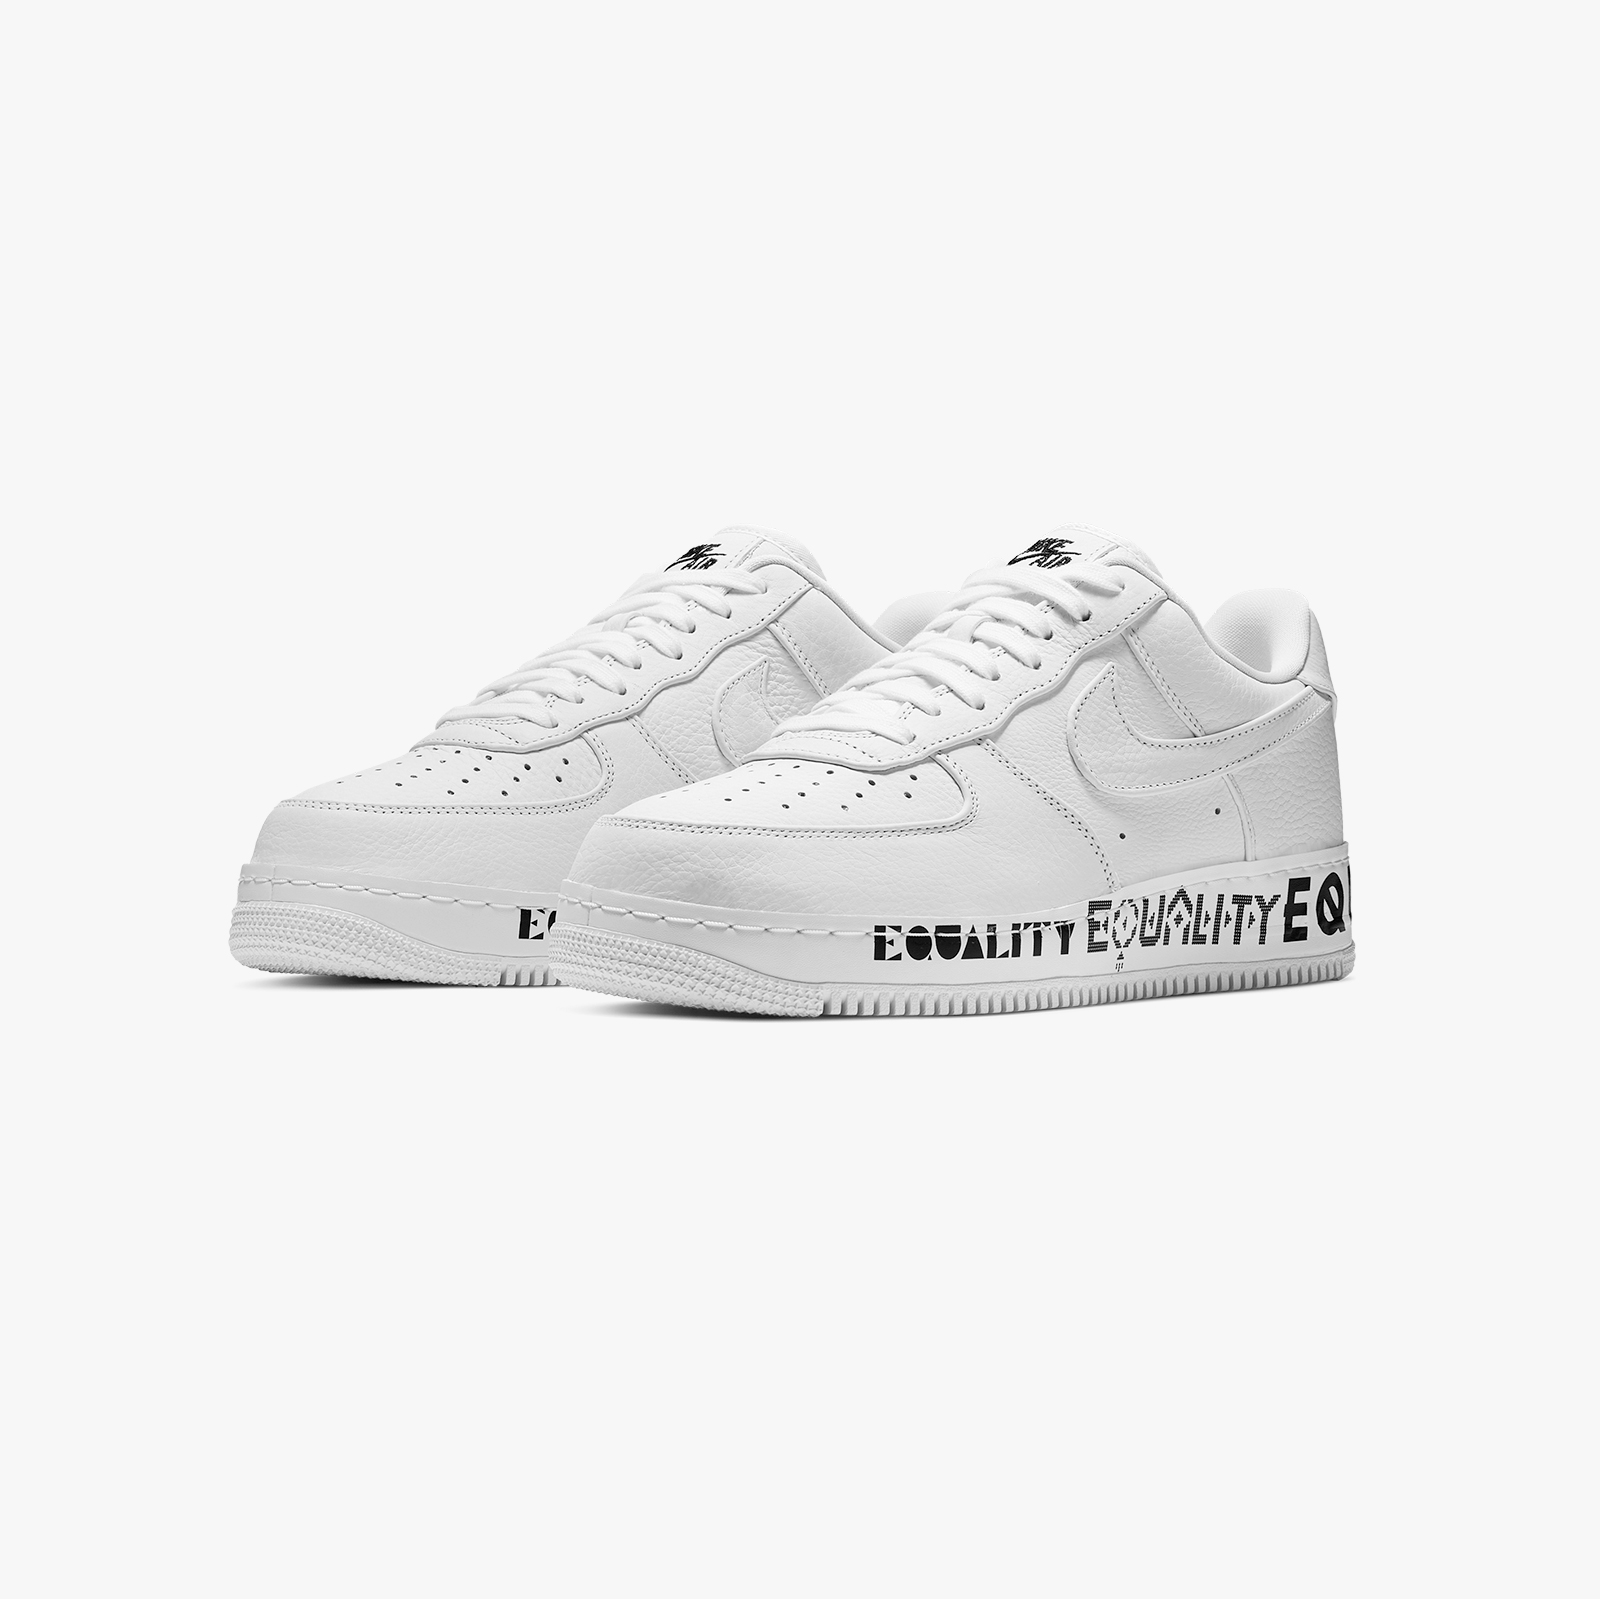 Nike Air Force 1 CMFT Low Equality